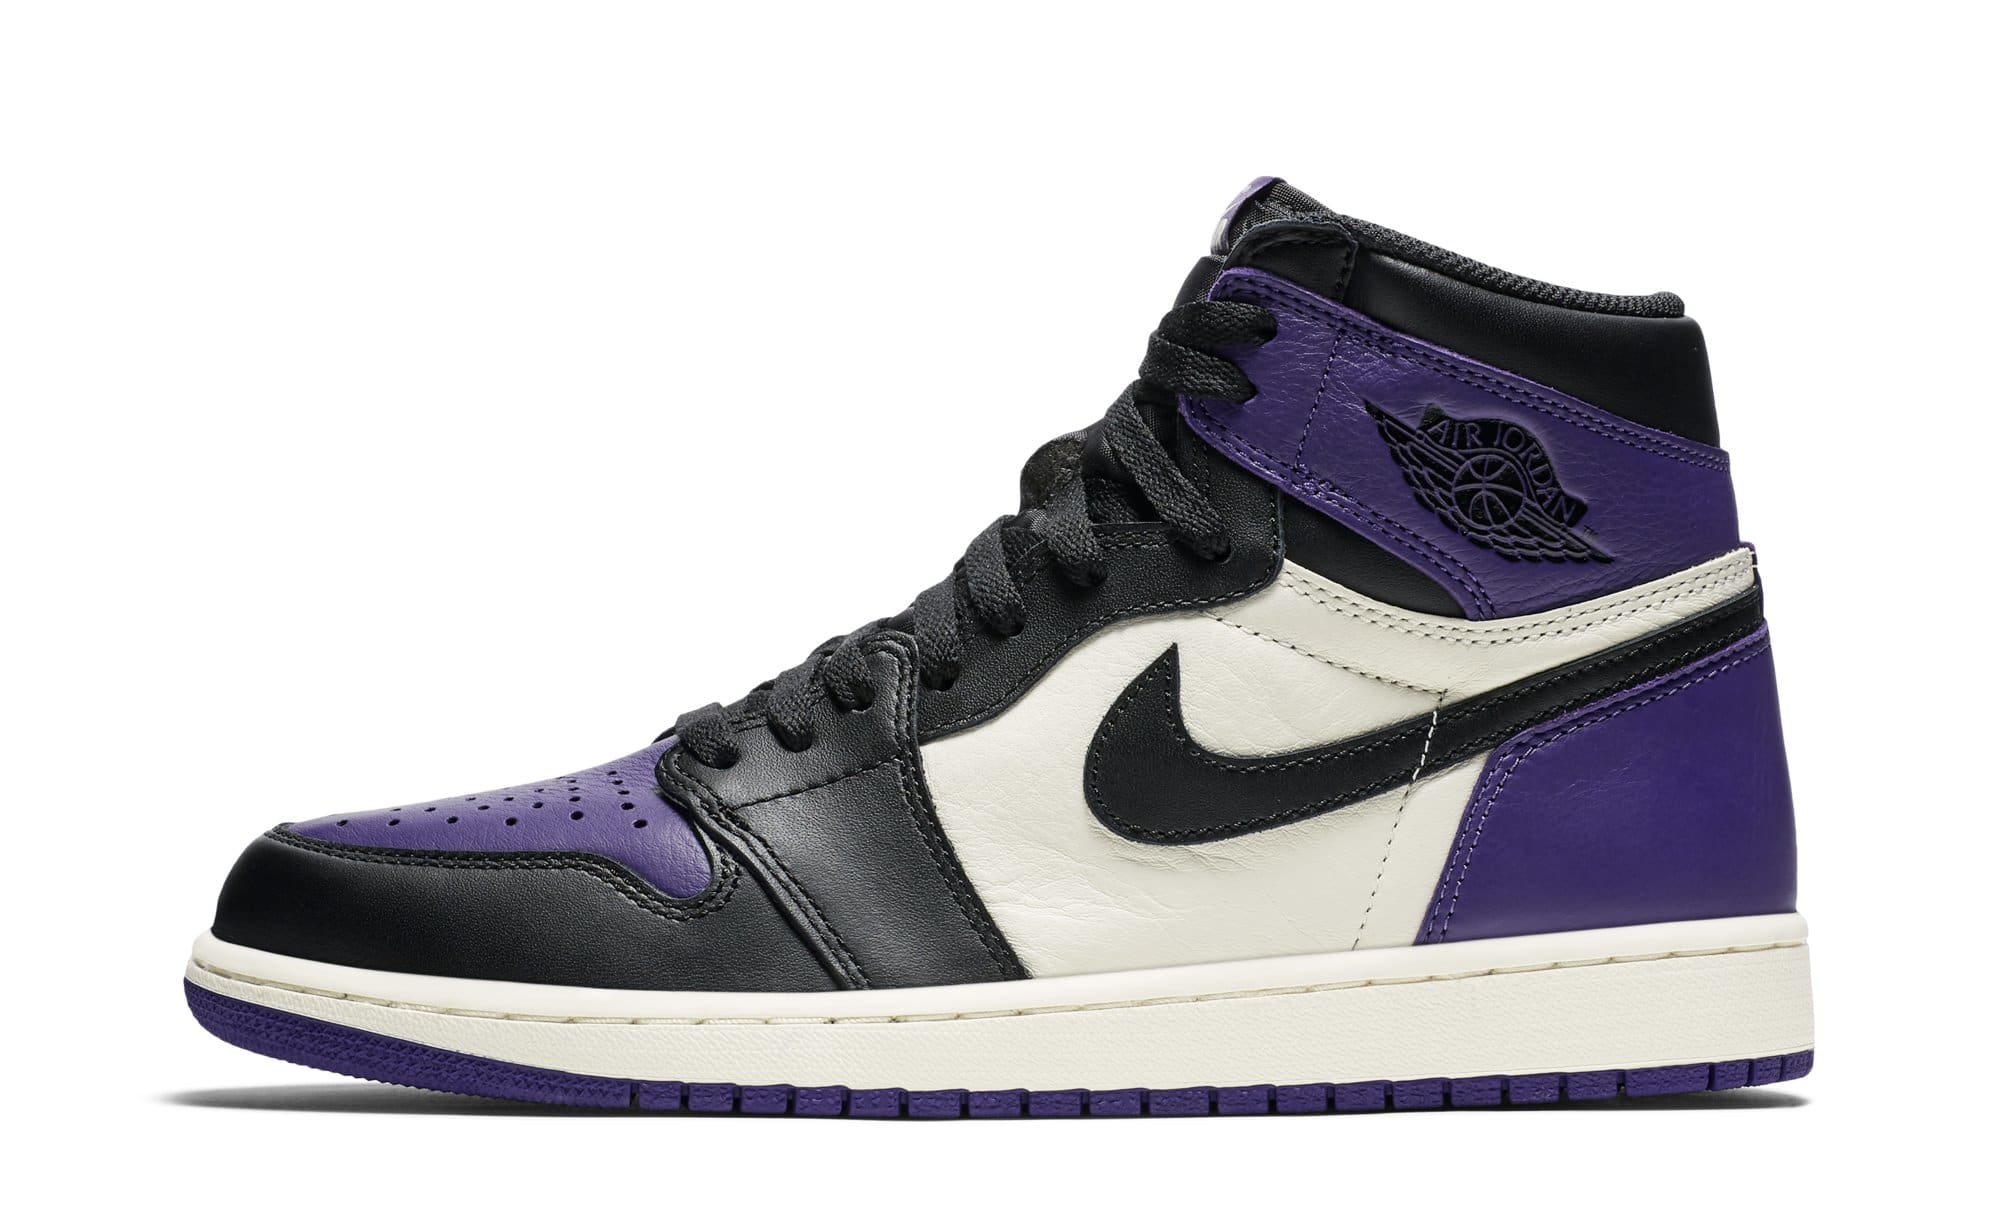 Air Jordan 1 High OG 'Court Purple' 555088-501 (Lateral)